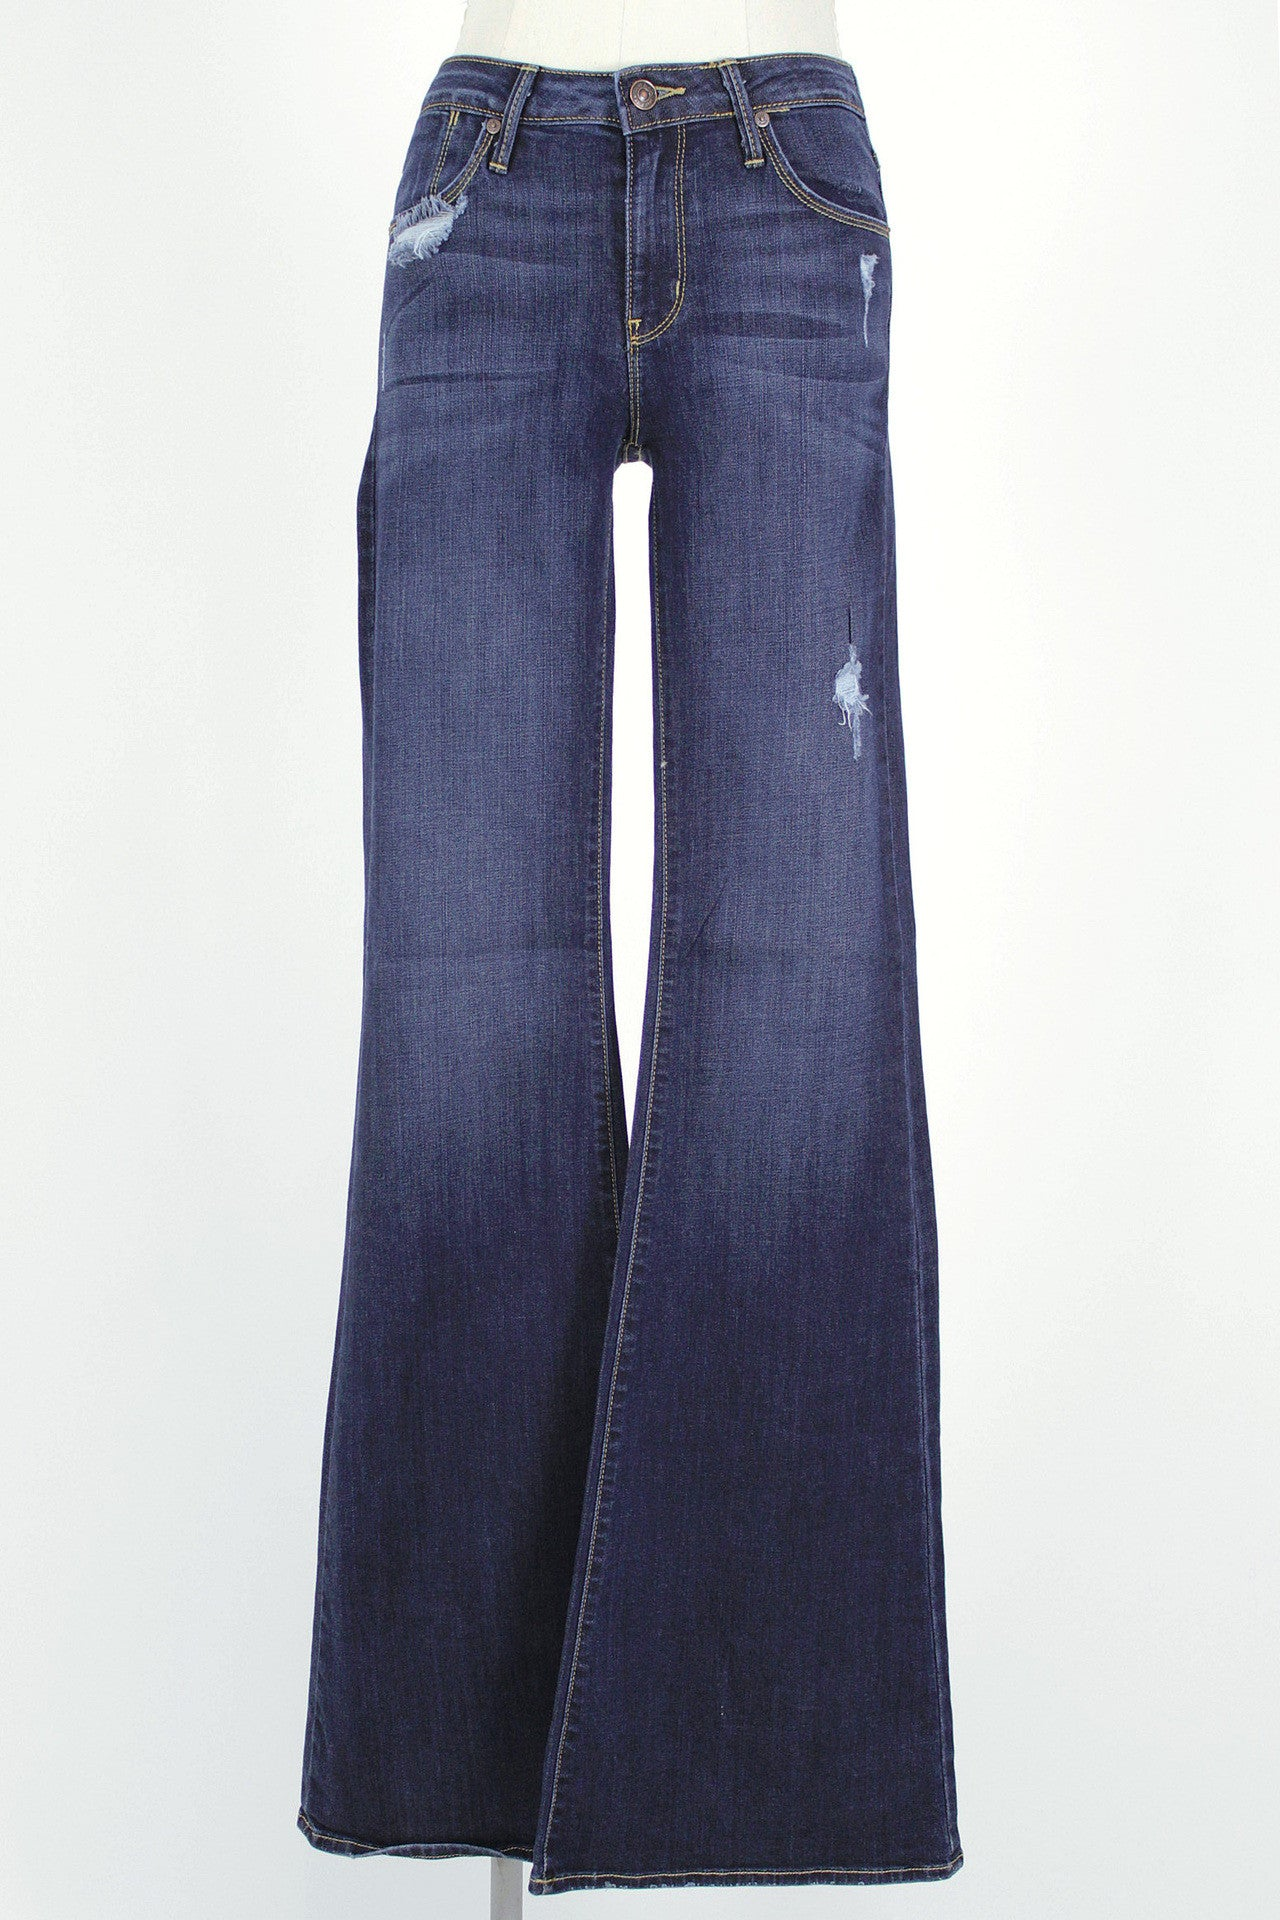 Slight Distressed 9 inch Flare Jean / Dark